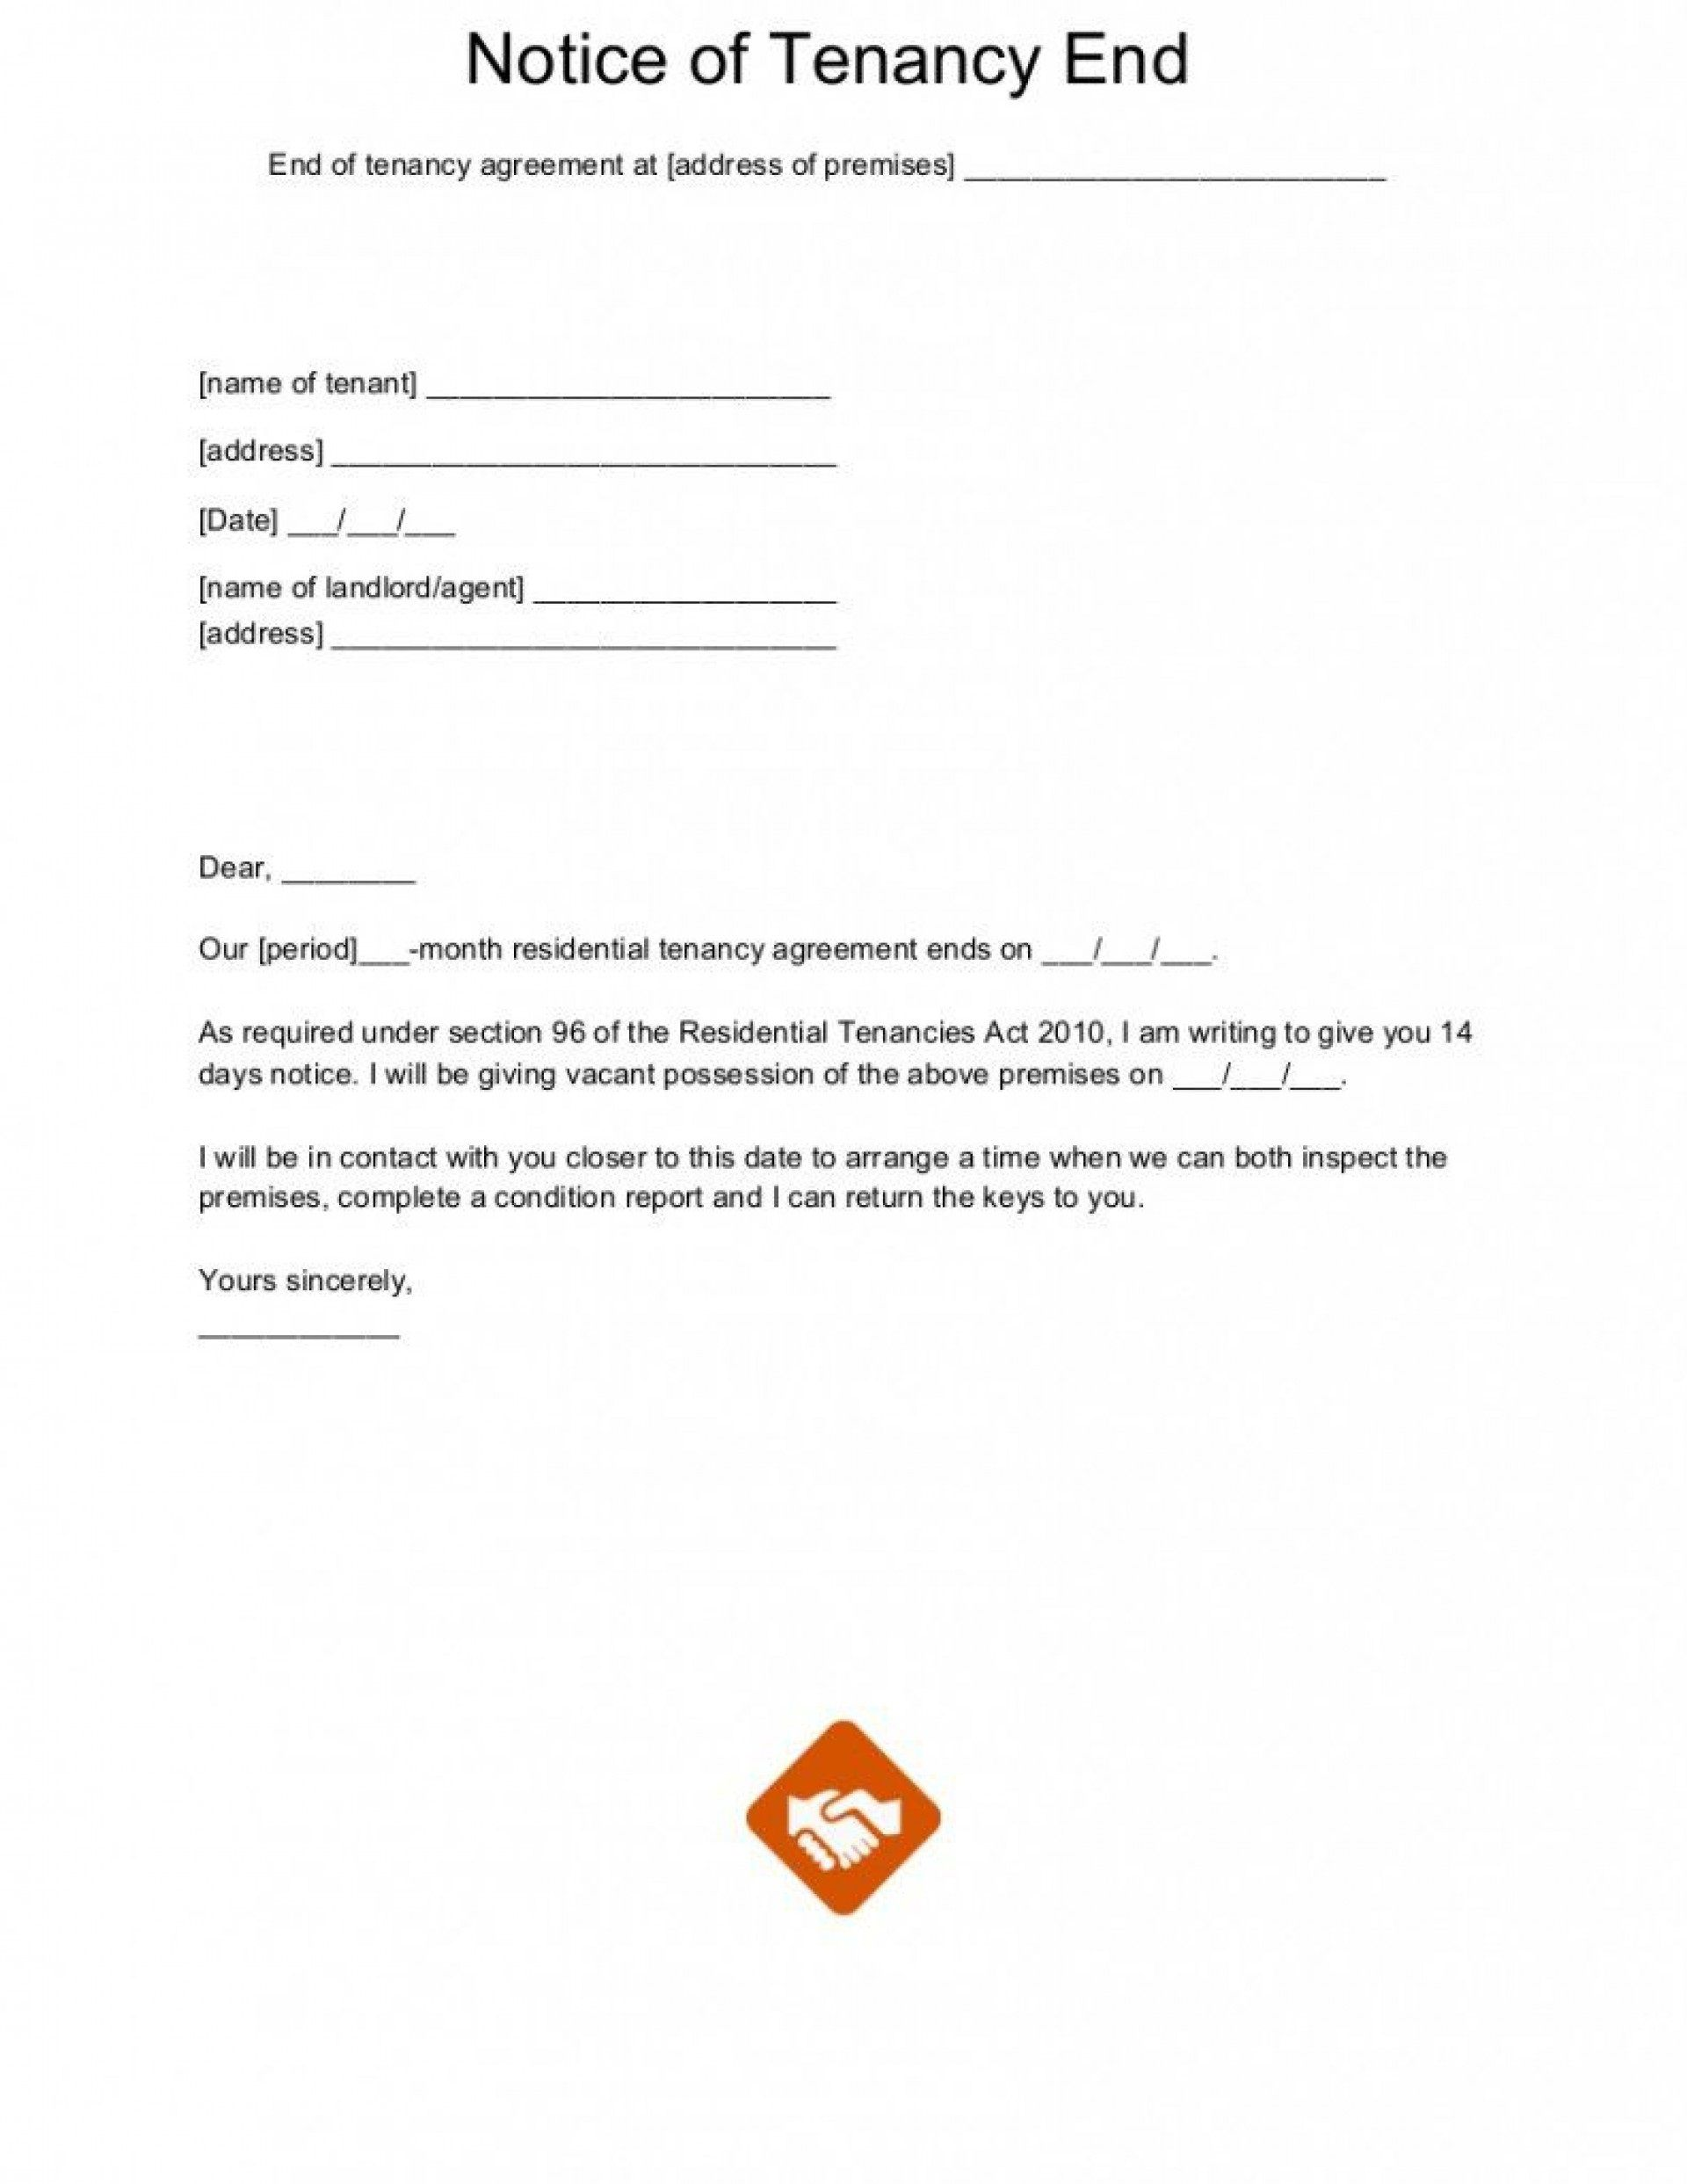 005 Formidable Template Letter To Terminate Rental Agreement Image  End Tenancy For Landlord EndingFull